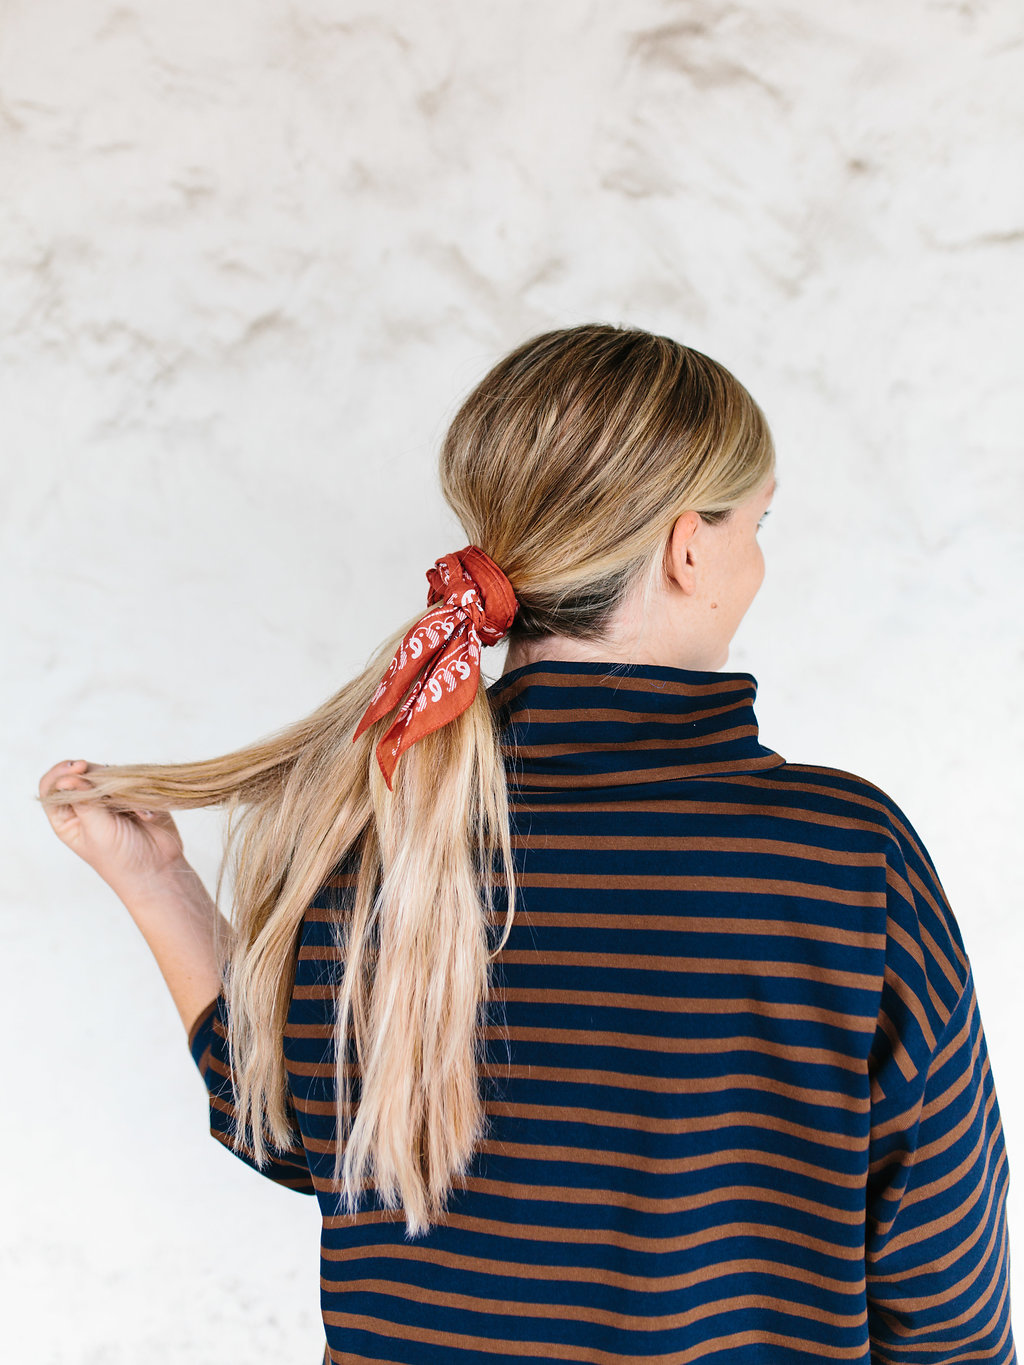 model with ponytail hair scarf style